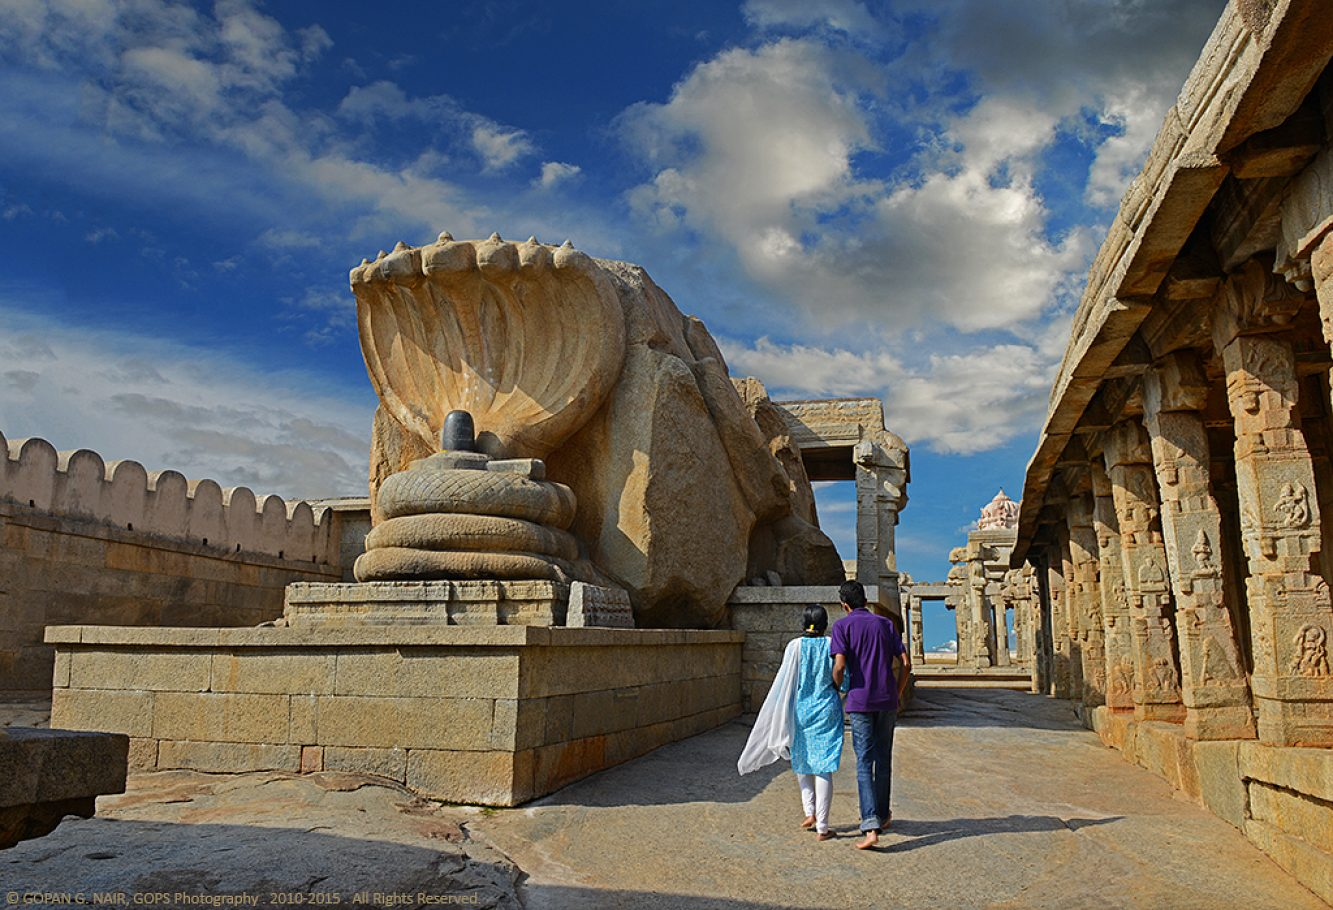 LEPAKSHI TEMPLE, ANDHRA PRADESH, INDIA